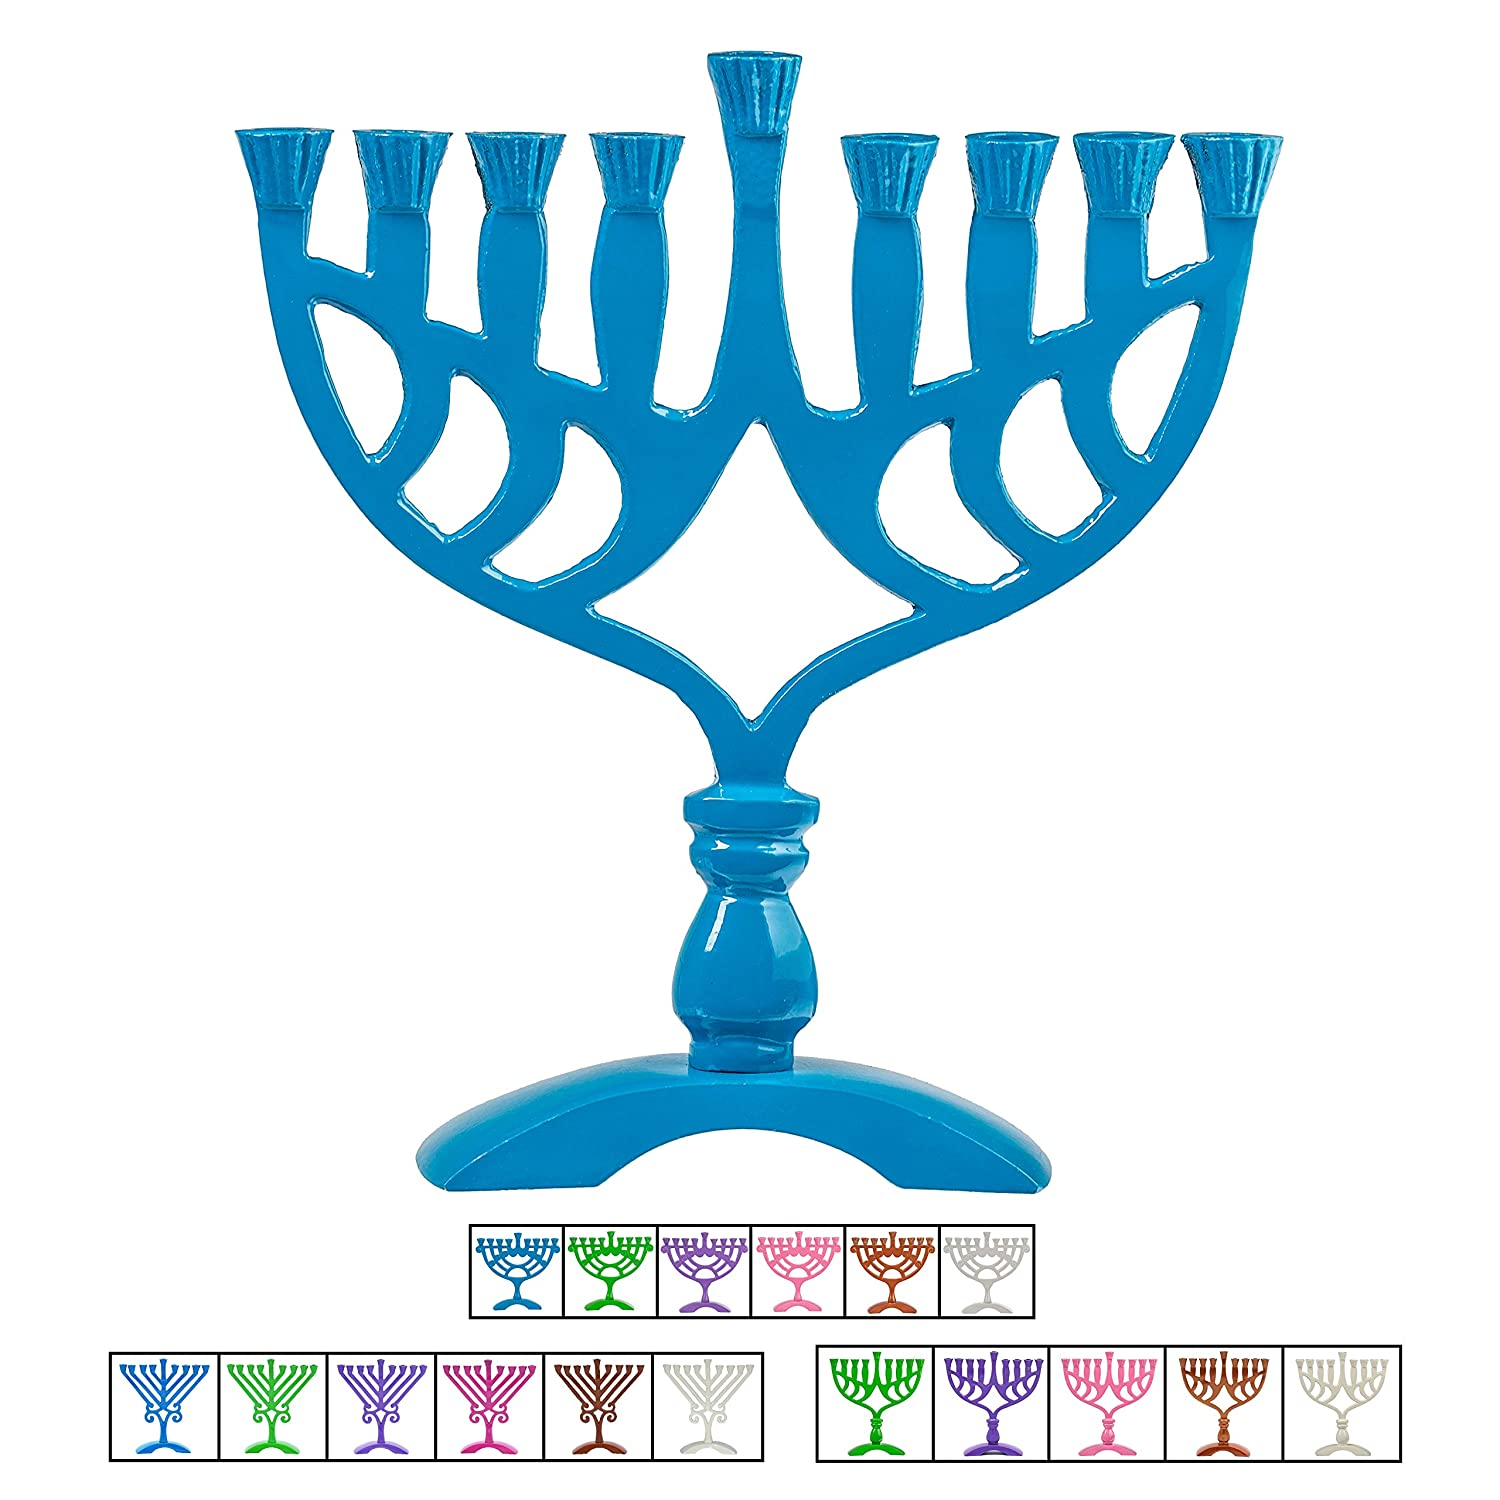 Ner mitzvah colored candle menorah fits all standard chanukah candles blue geometric design 7 5 high